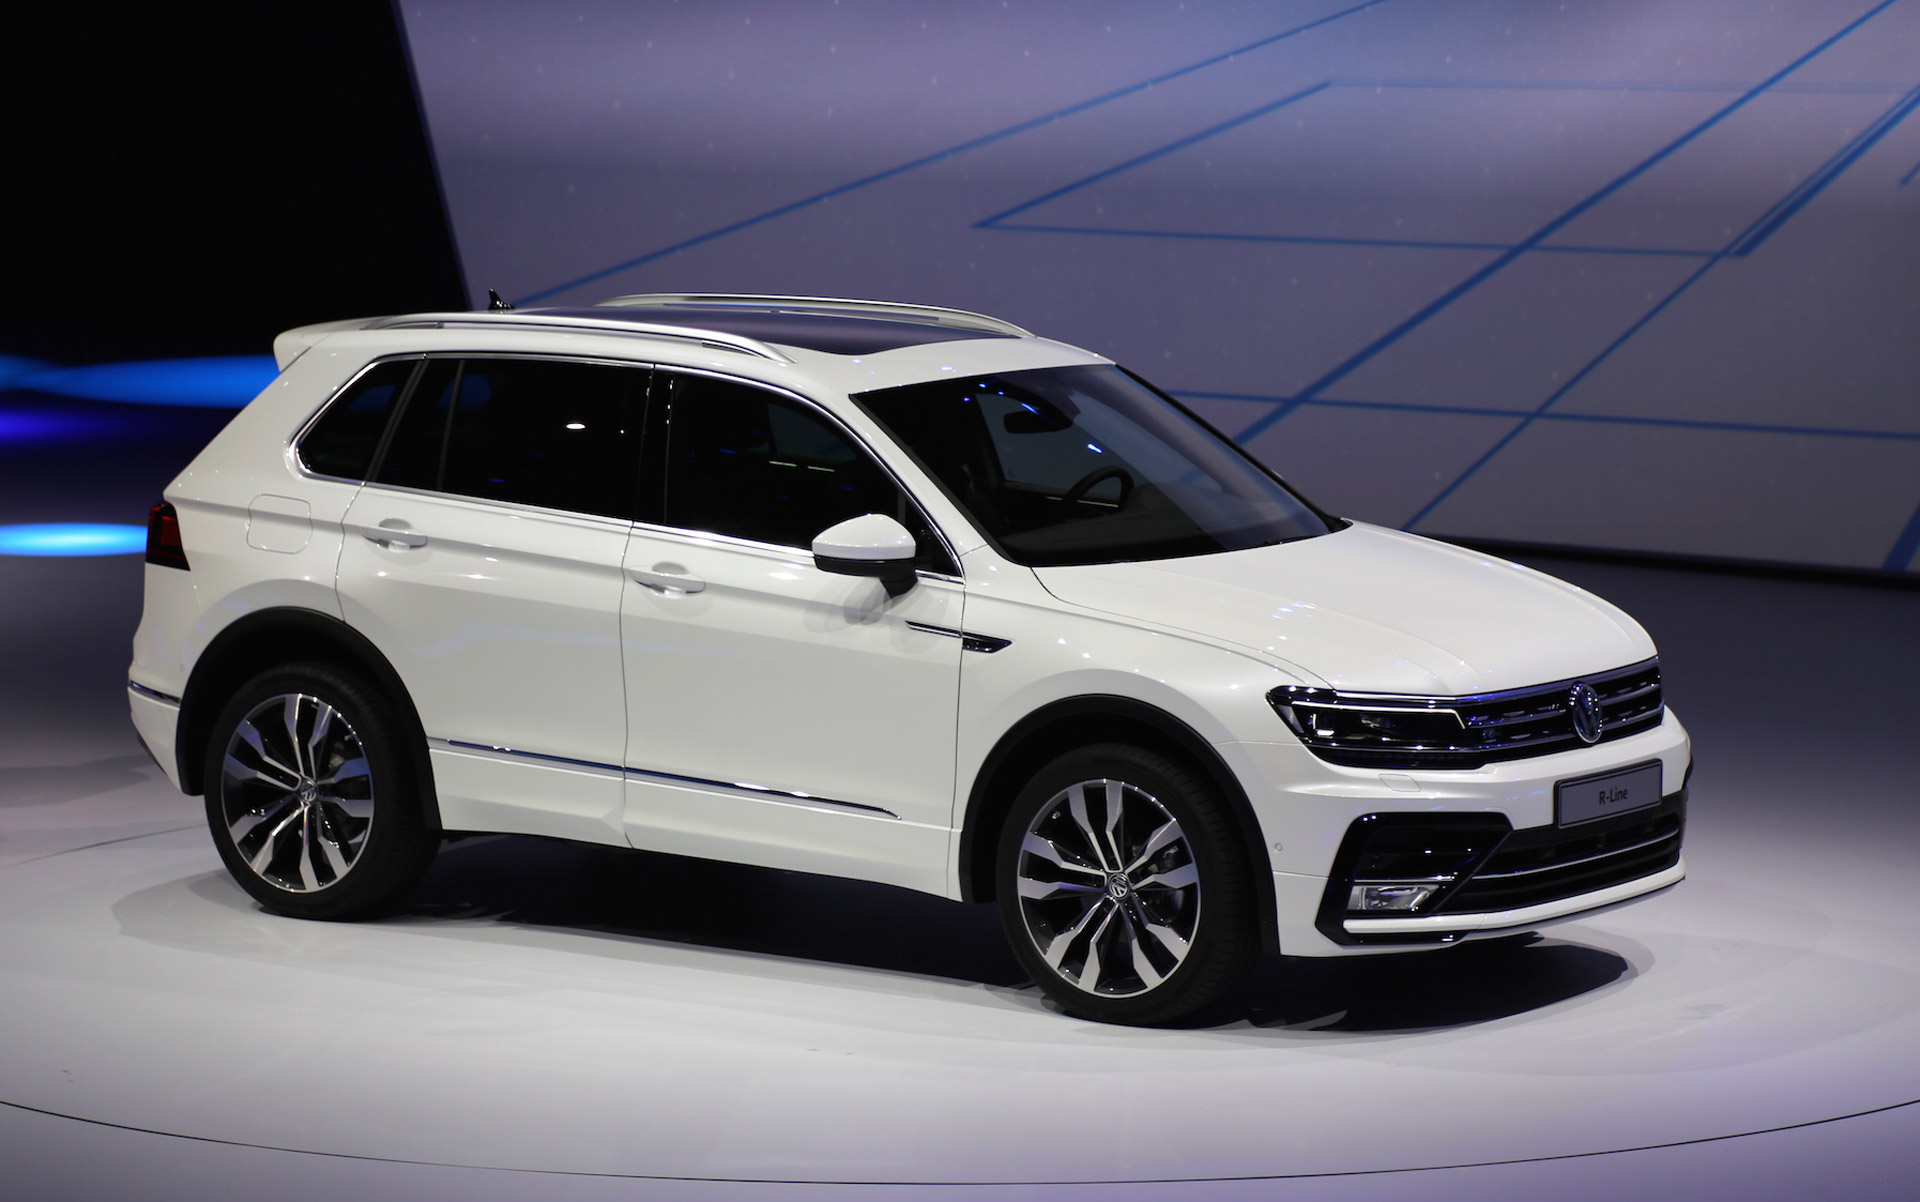 2018 Vw Tiguan Suv Aims For U S With